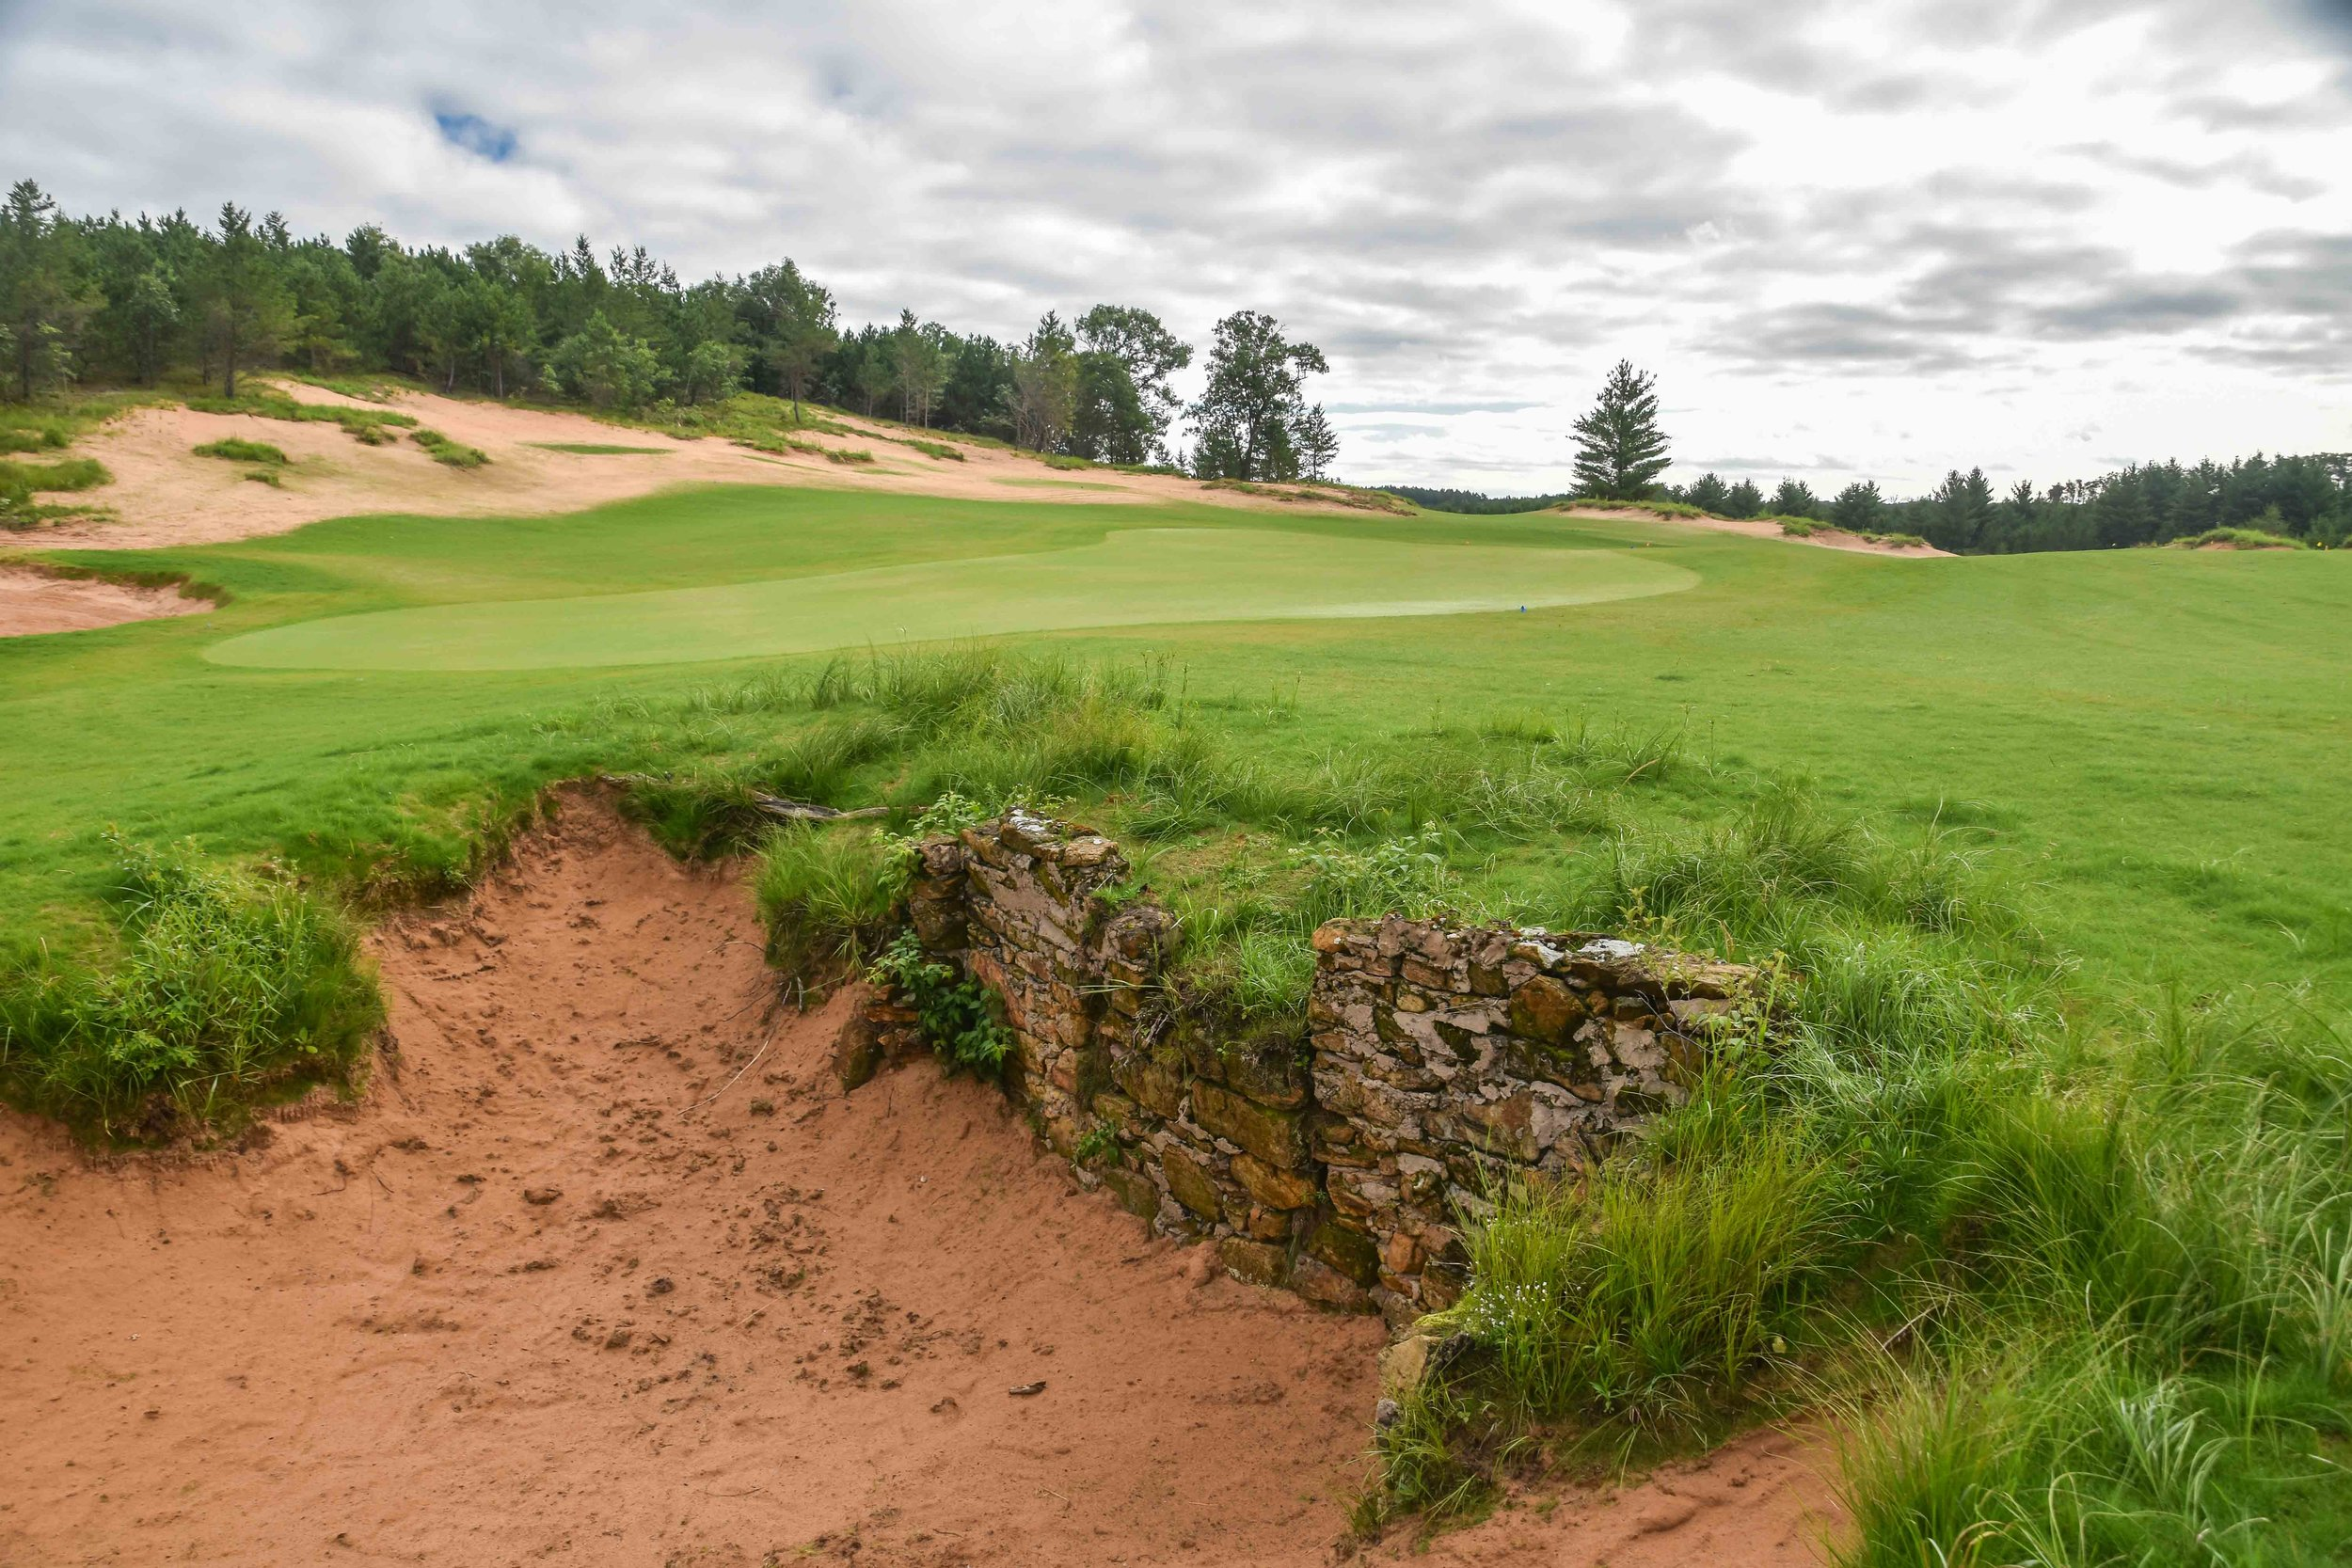 While creating Mammoth Dunes, Kidd and his team uncovered an old housing foundation.  Instead of removing it, they made a bunker out of it.  It's gnarly and awesome.